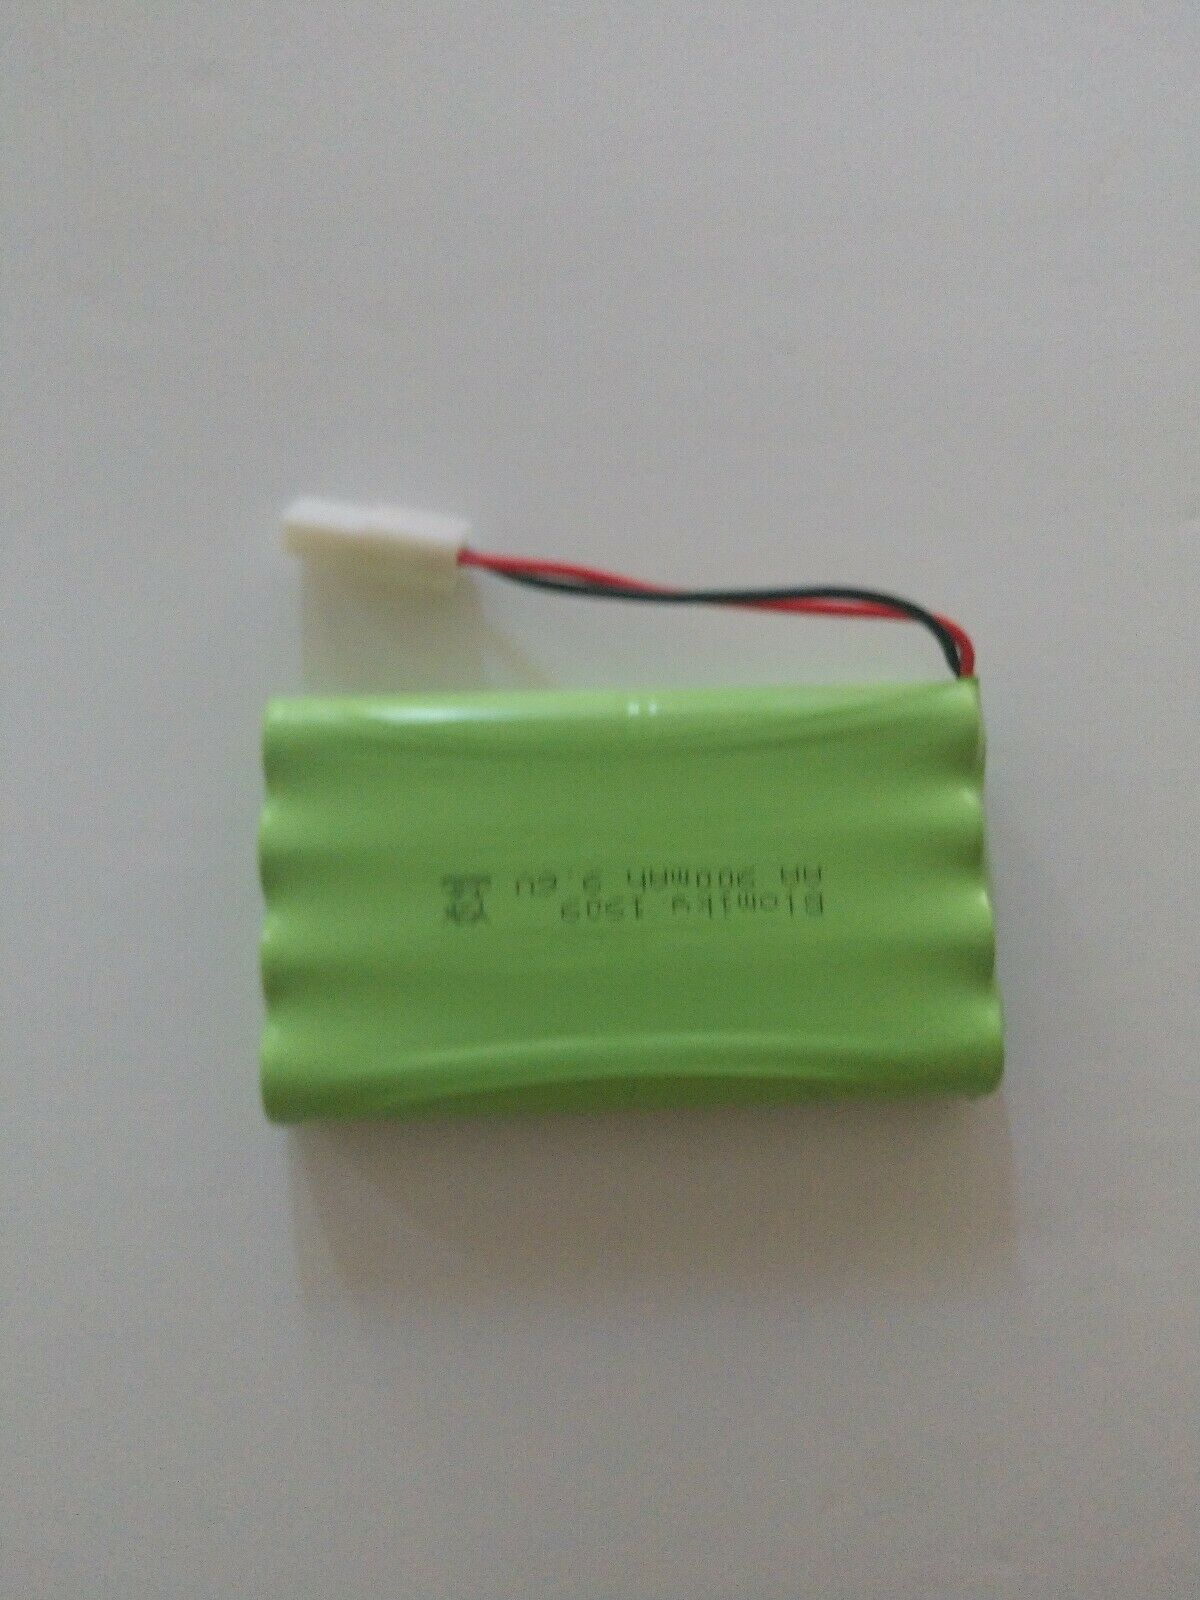 (2) 9.6V AA NiMH Ni-MH Battery Packs Rechargeable With L6.2/SM/JST Connector C2D